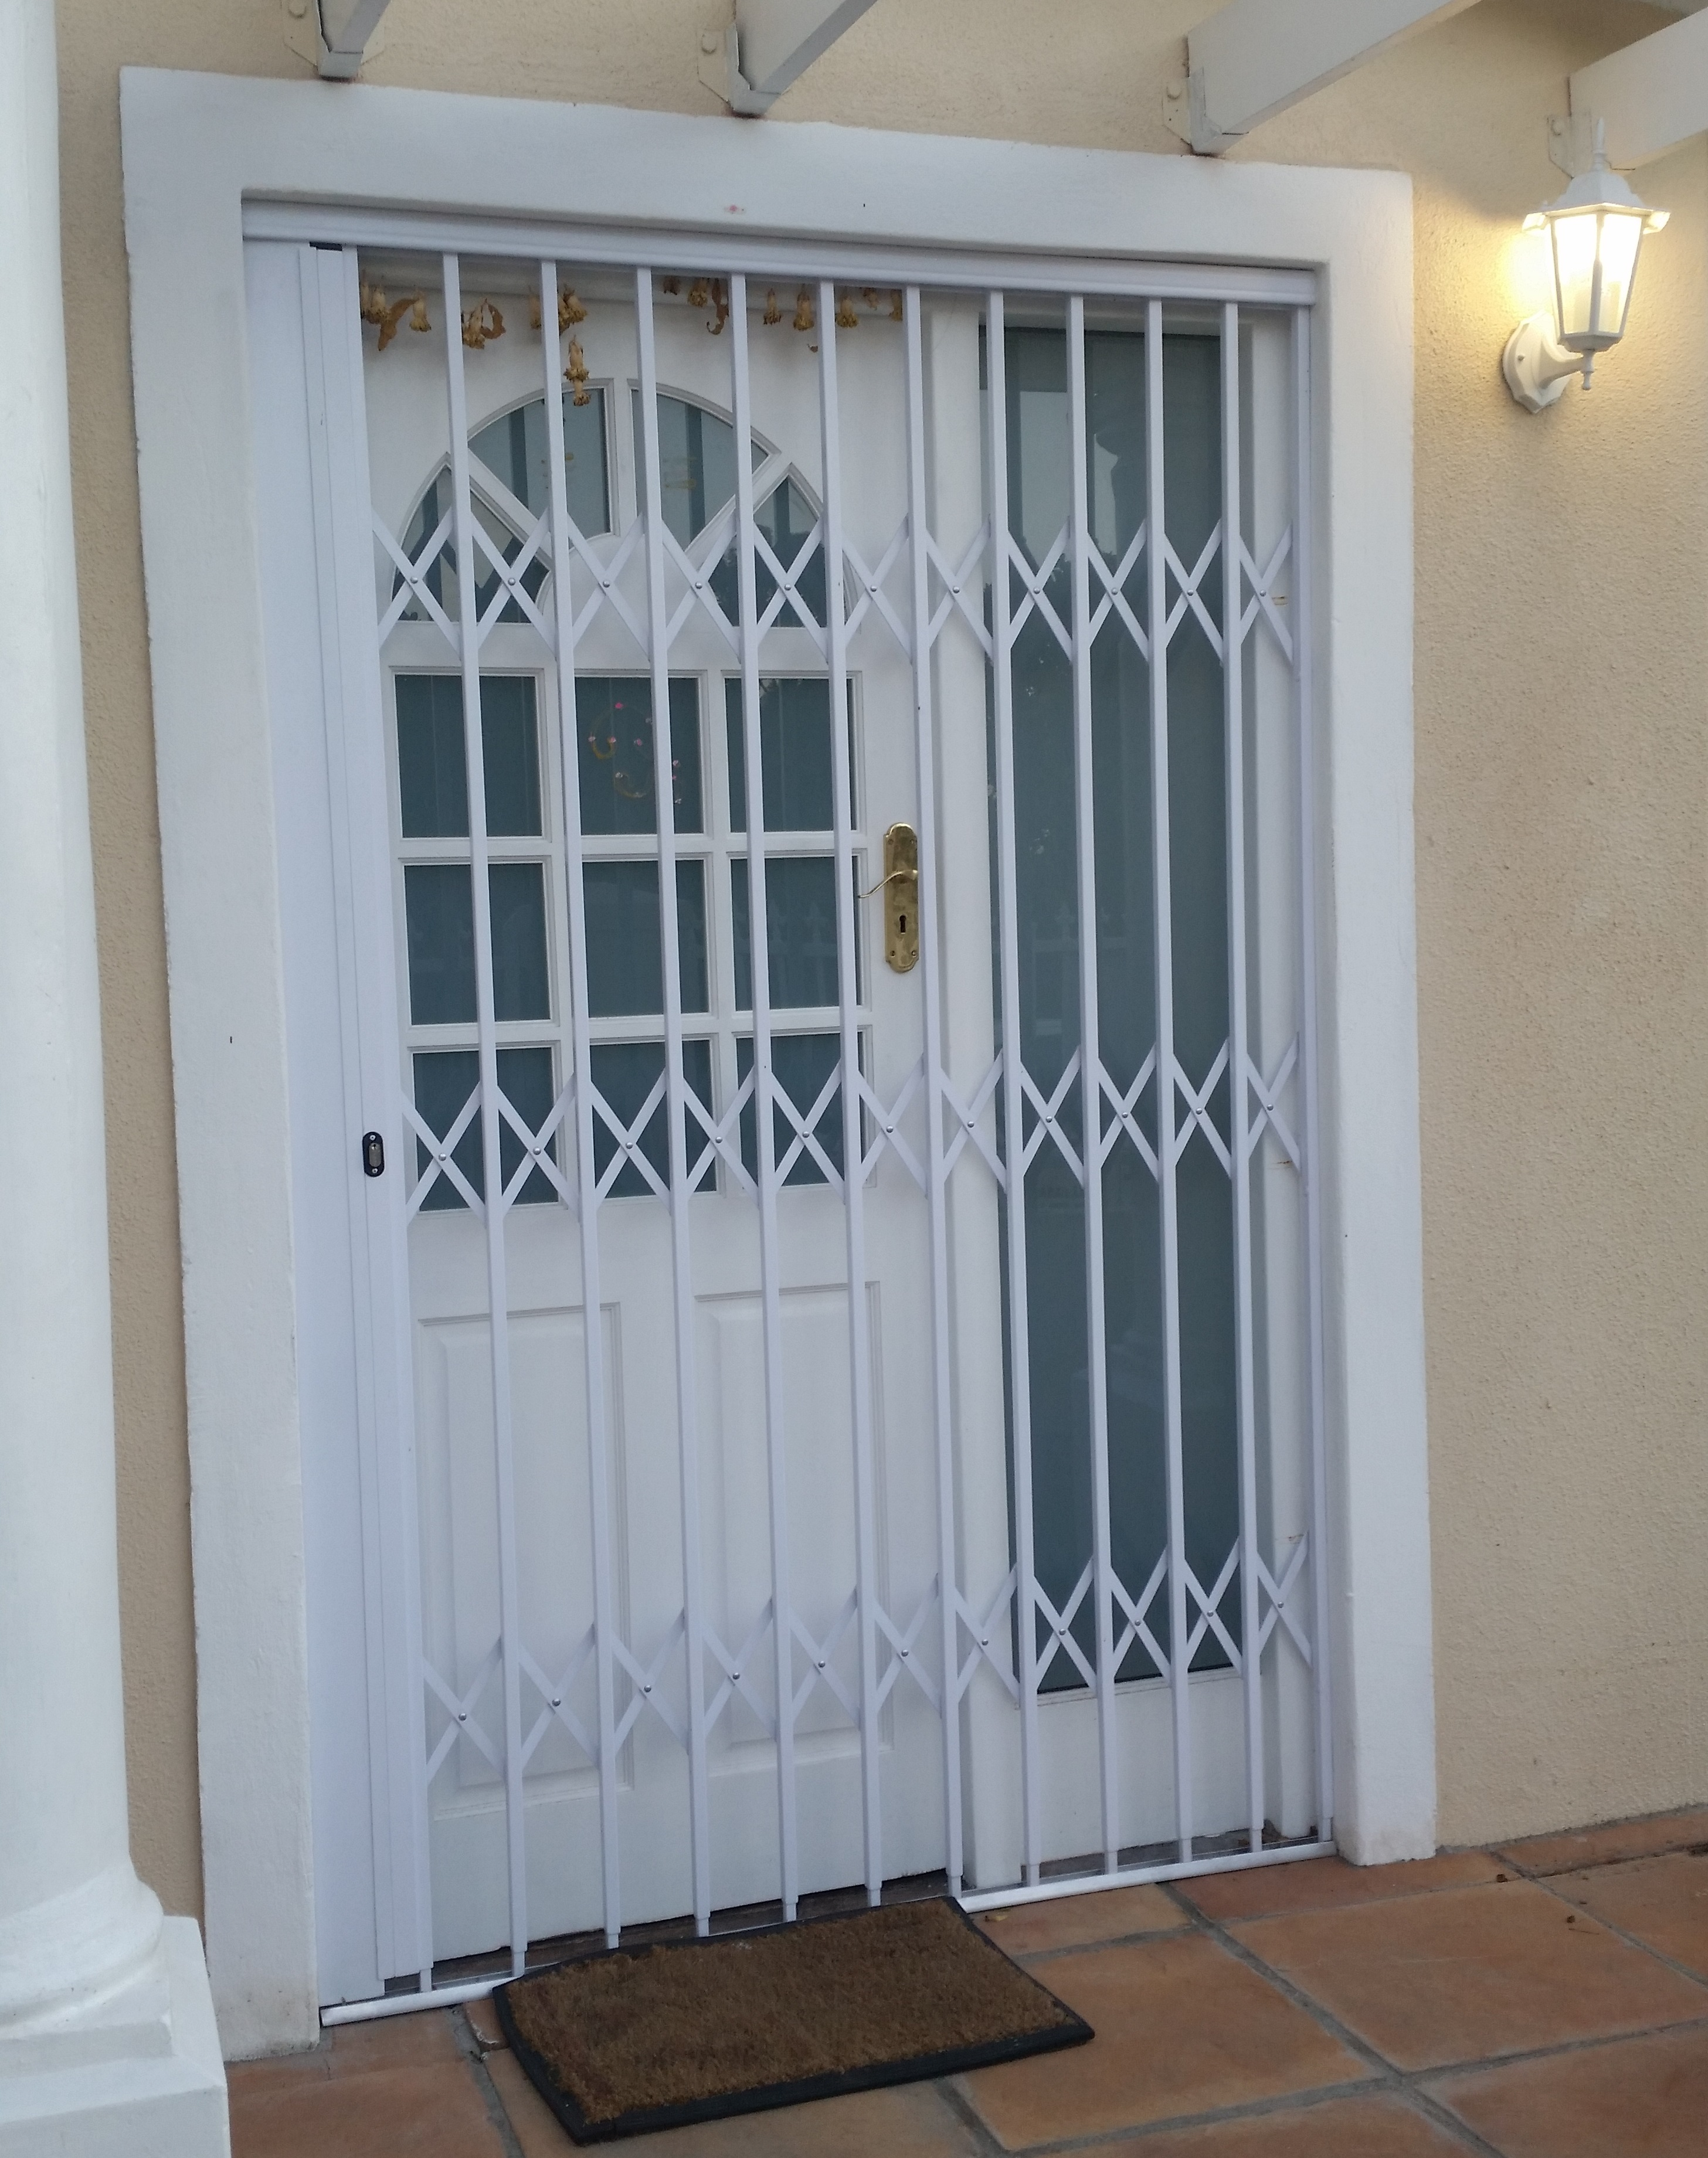 Trellis Door & Trellis Expanding Doors - J\u0026D Ship Group